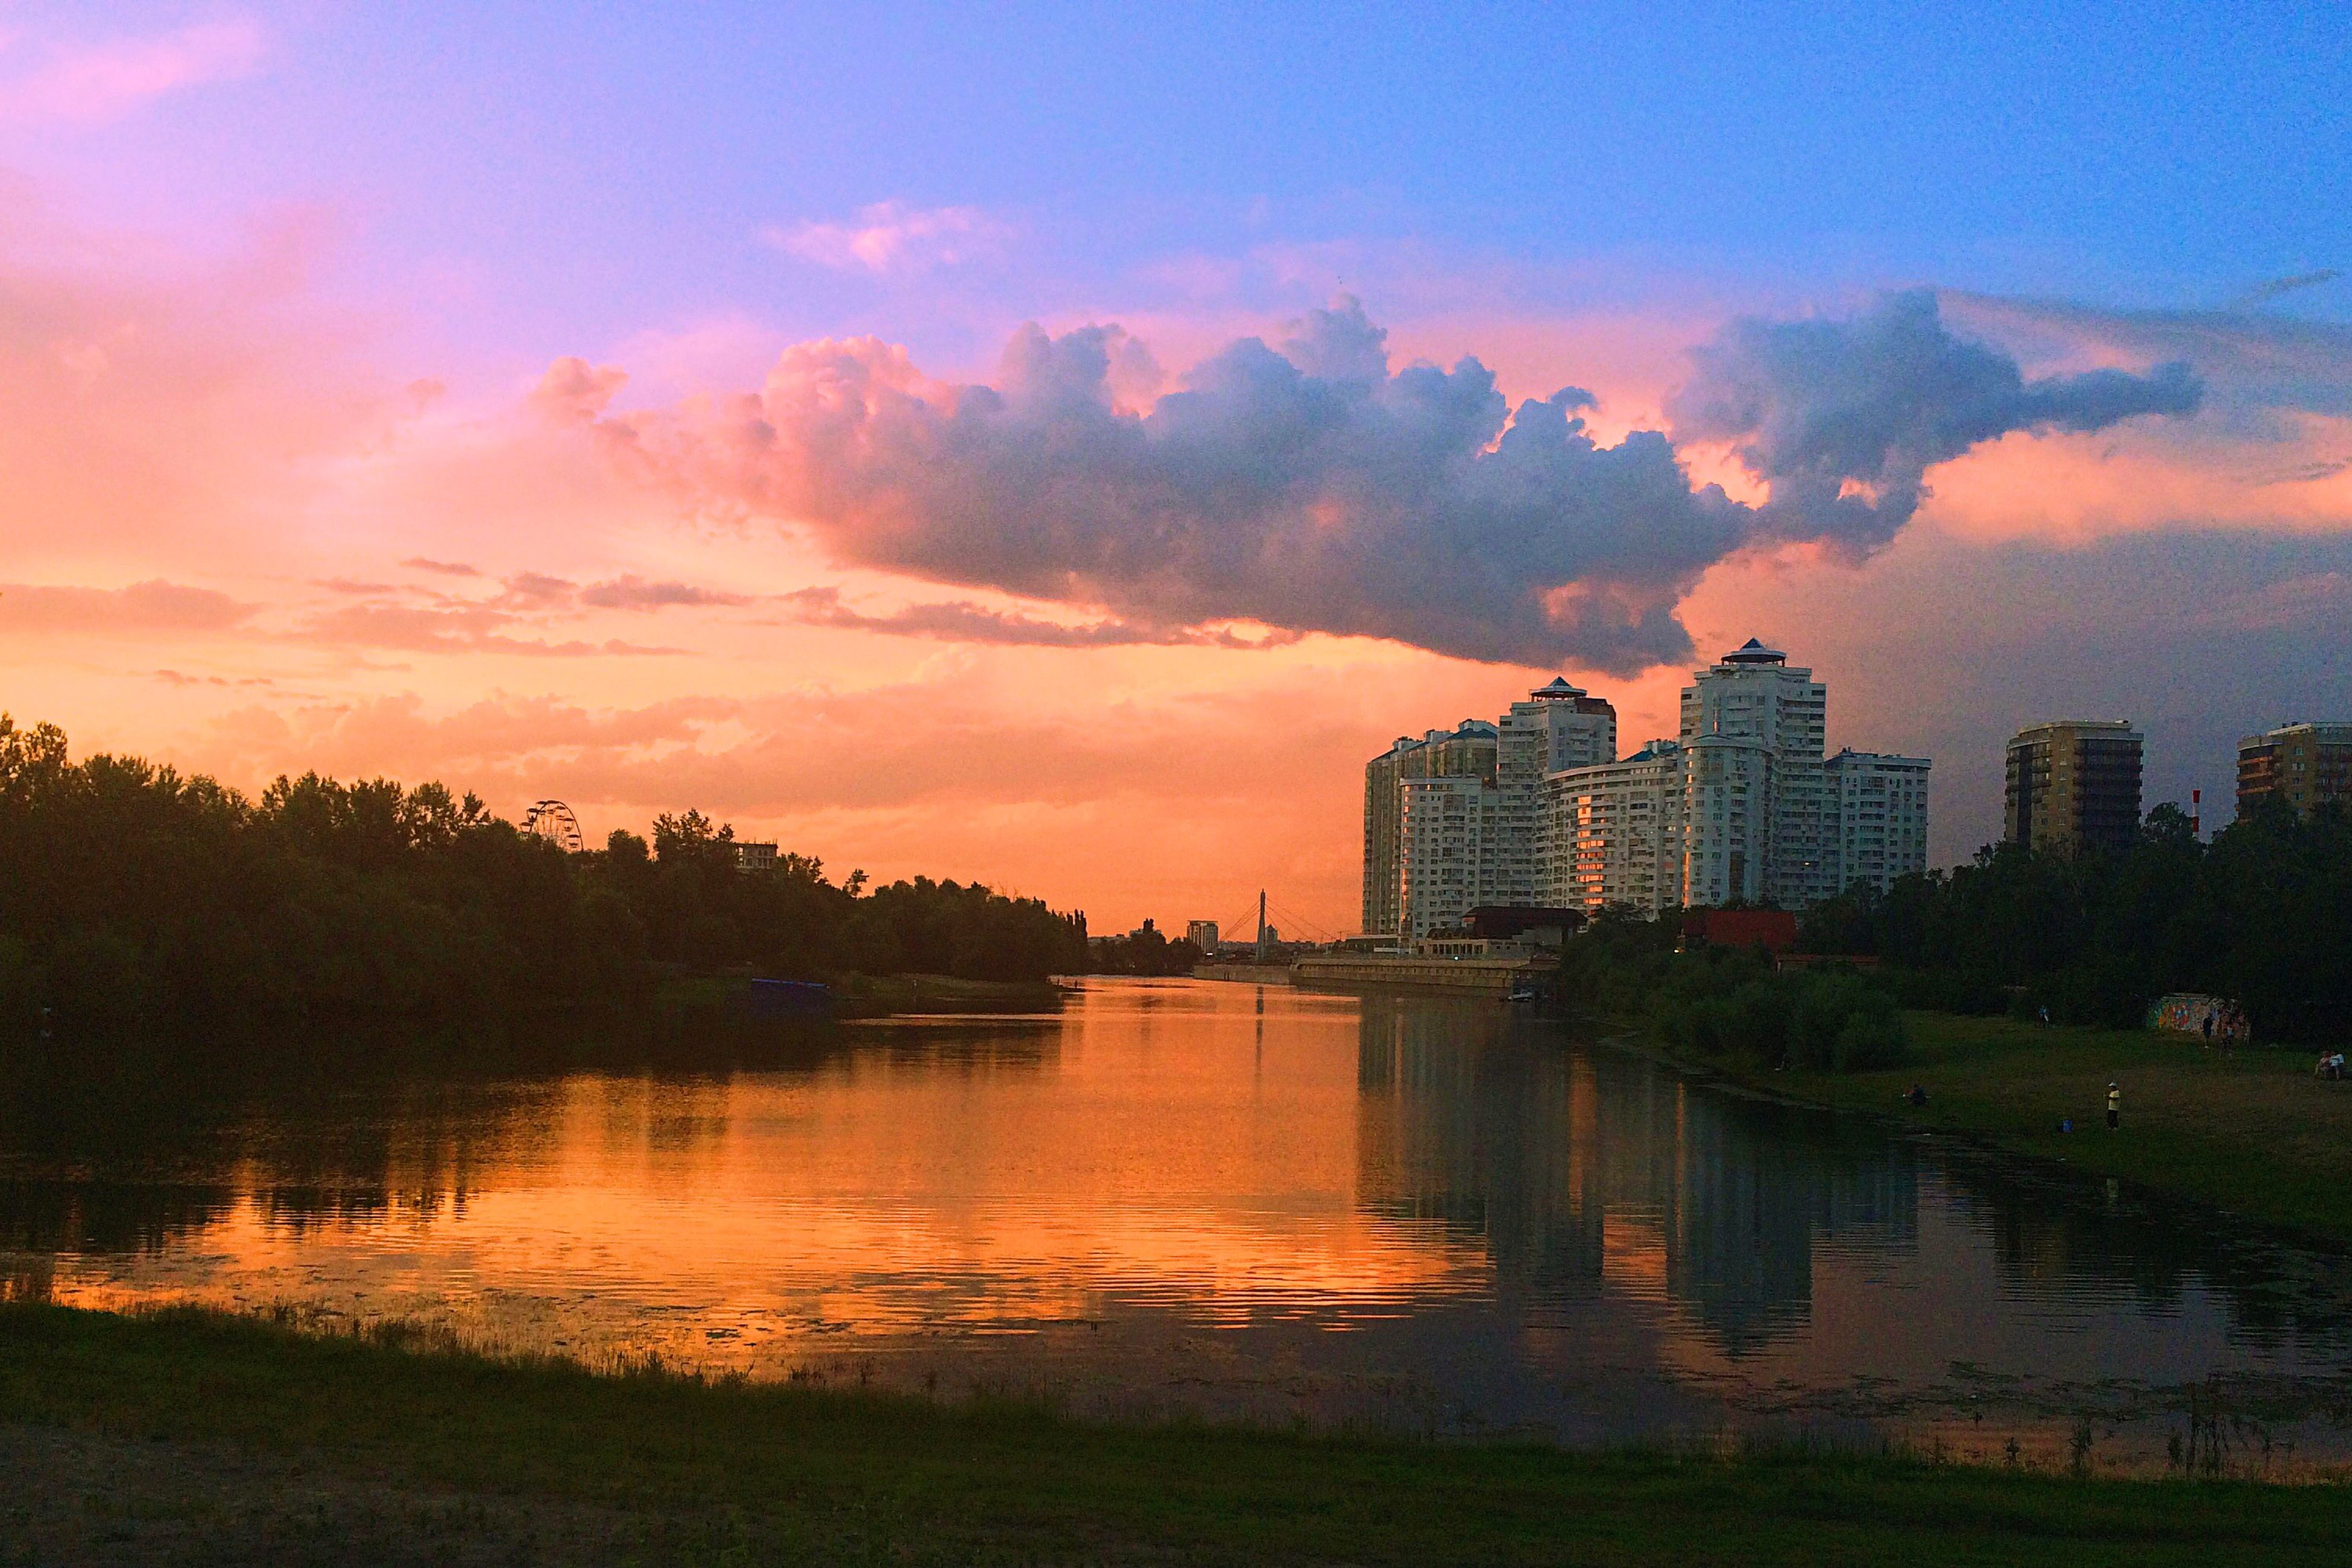 sunset, building exterior, architecture, water, built structure, sky, reflection, cloud - sky, tree, lake, river, city, waterfront, orange color, cloud, silhouette, scenics, beauty in nature, tranquility, nature